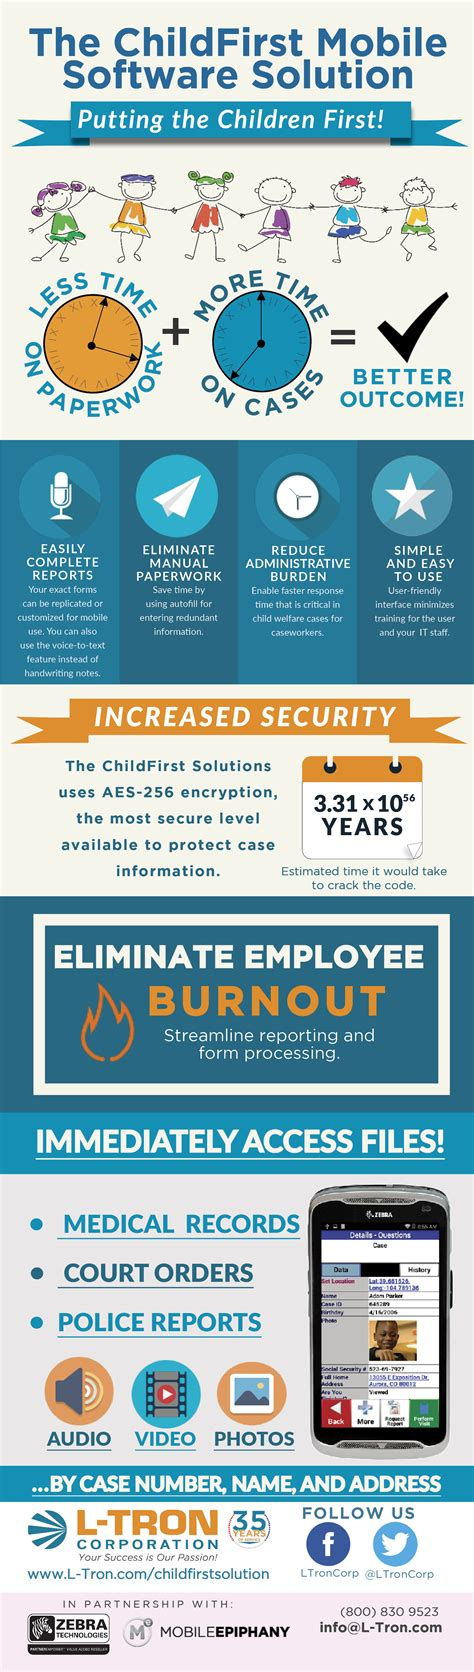 mobile software solution infographic benefits of the childfirst mobile software